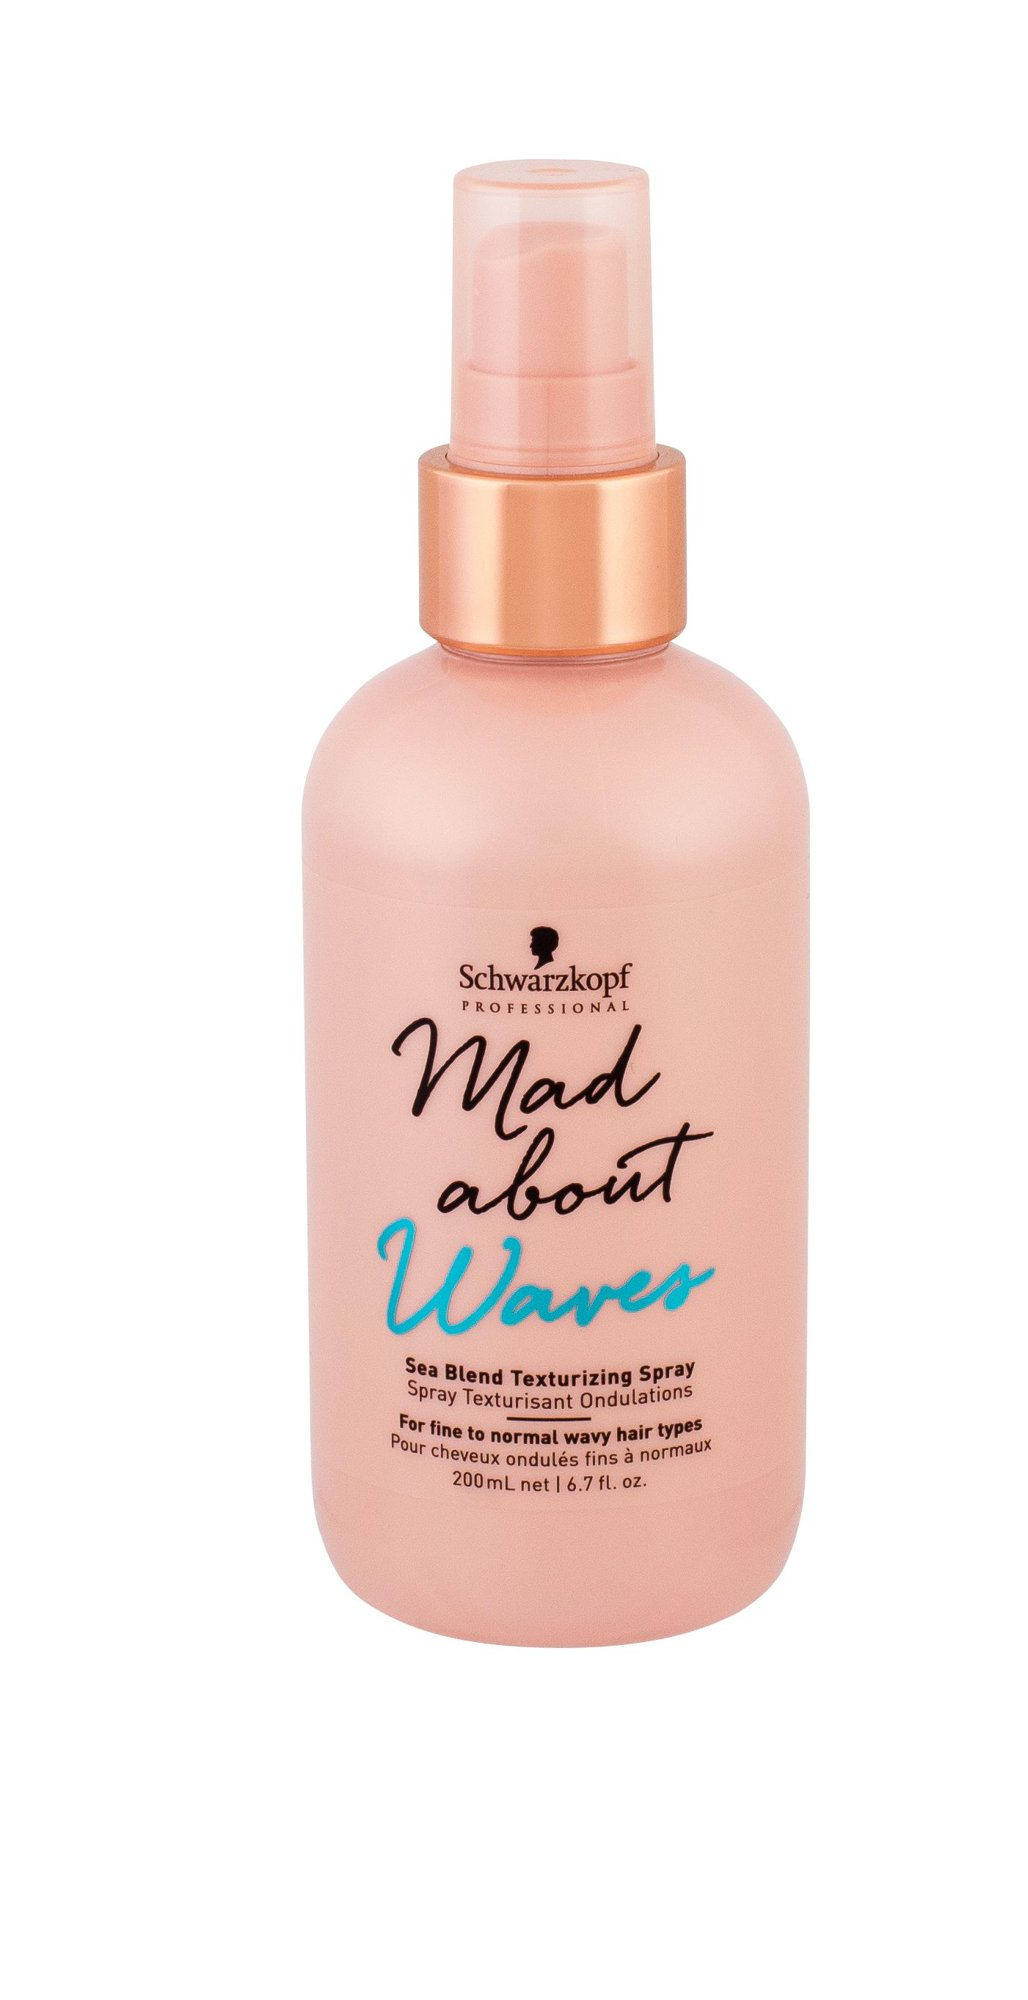 Schwarzkopf Mad About Waves Waves Styling 200ml